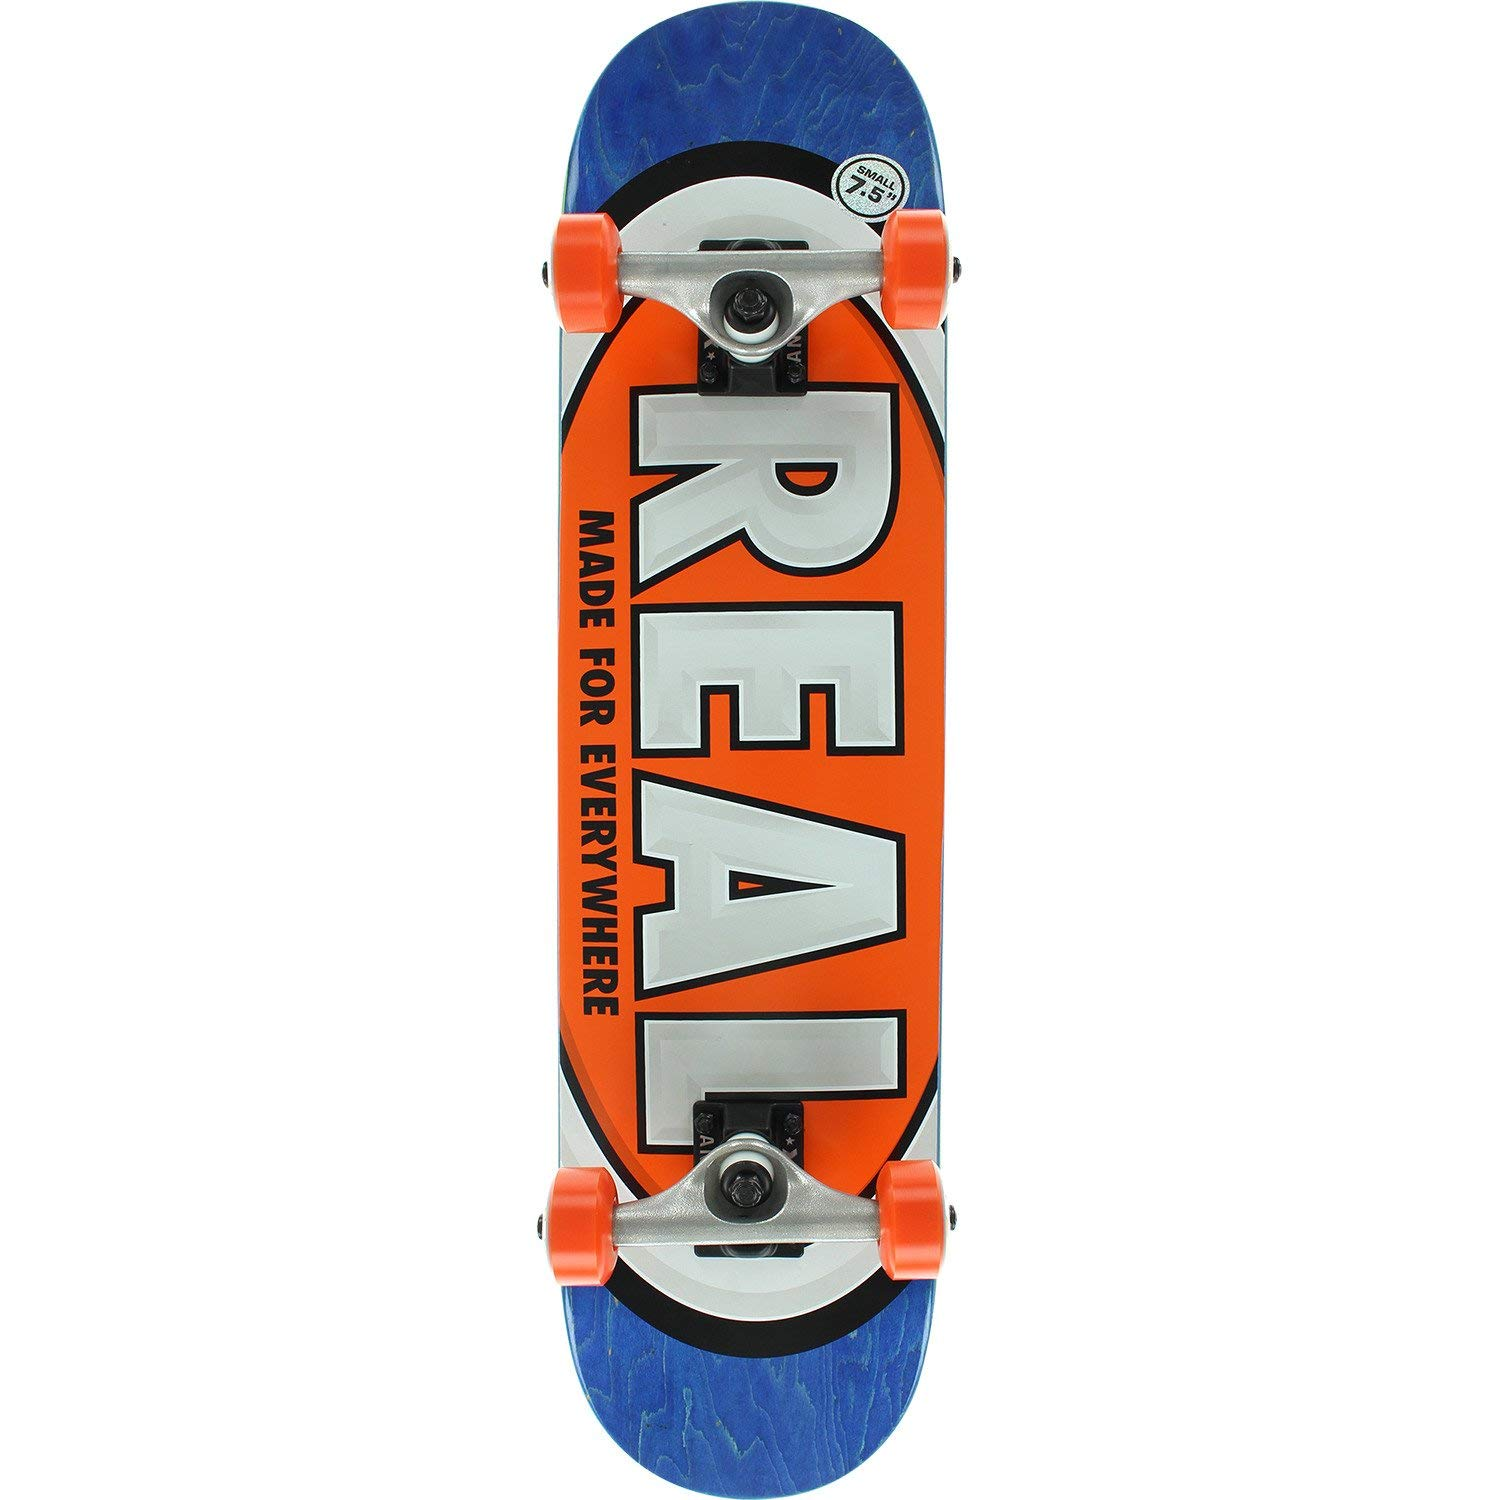 "Real Skateboards Team Oval Small Blue/Orange Mid Complete Skateboards - 7.5"" x 31.12"""